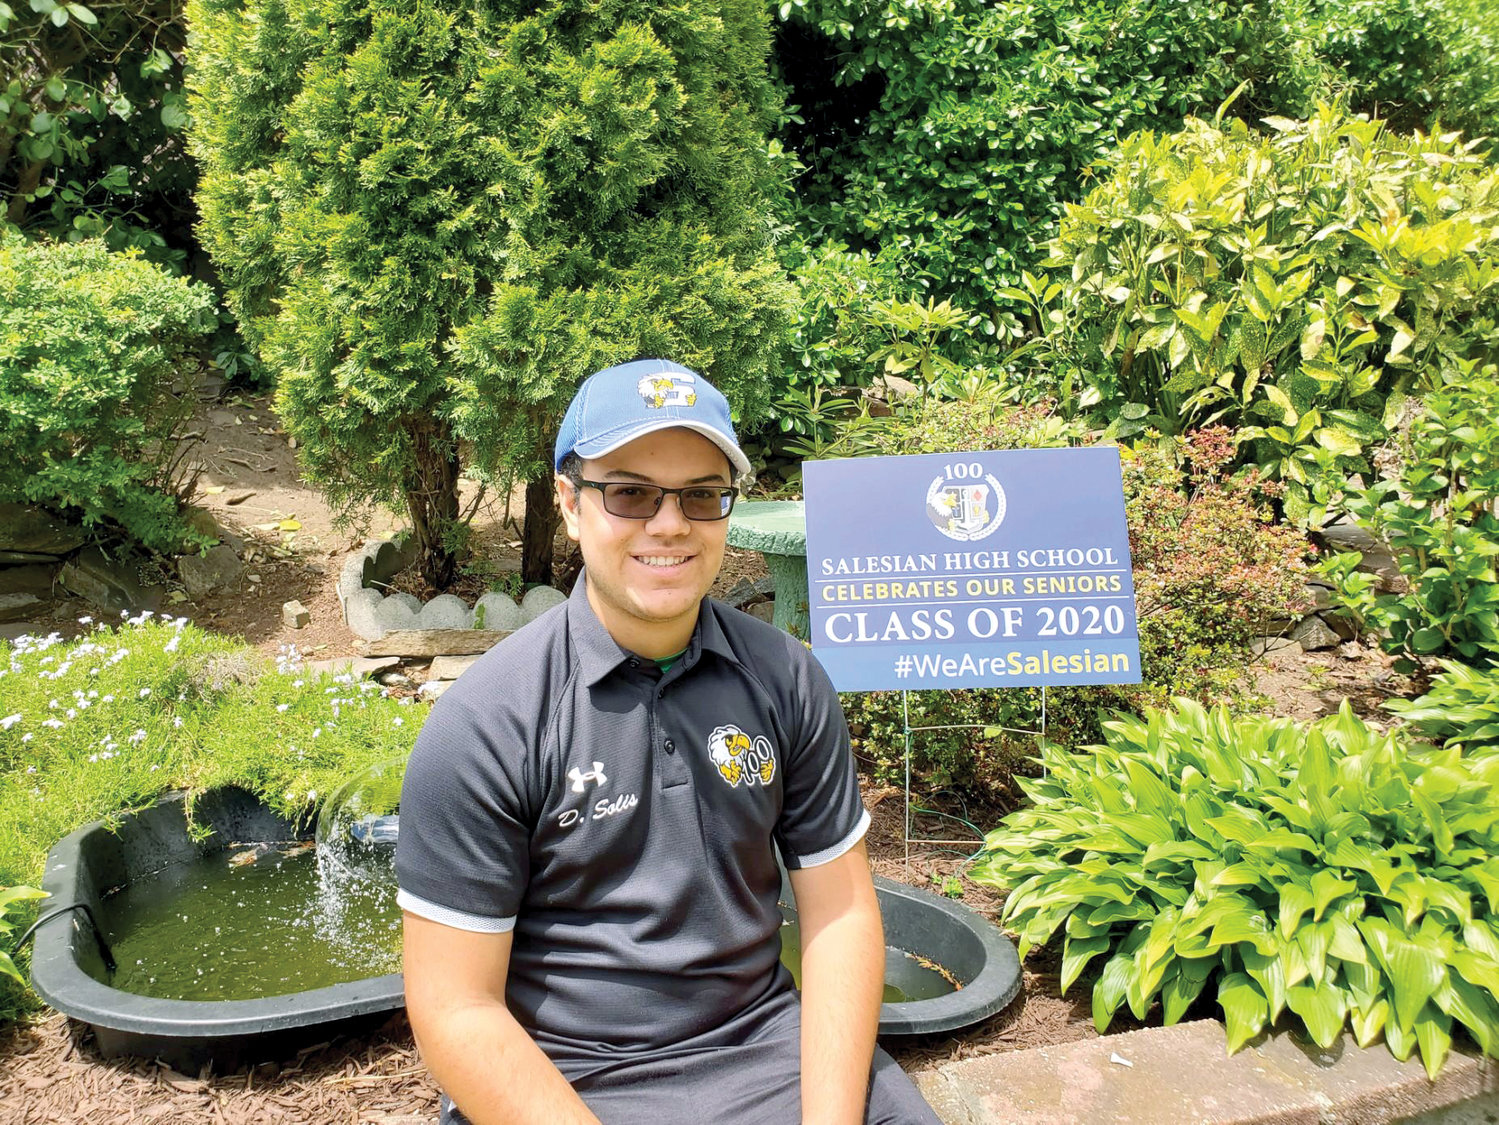 PROUD SENIOR—Salesian High School senior Daniel Solis sits in a photo with 